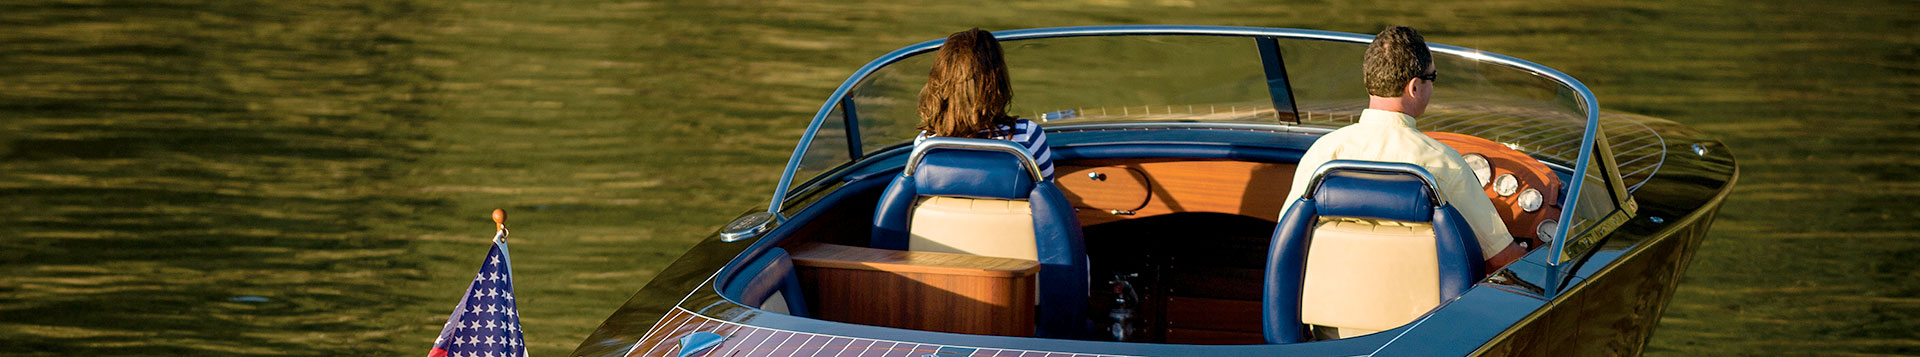 Care for your wood boat is important, count on Coeur Customs